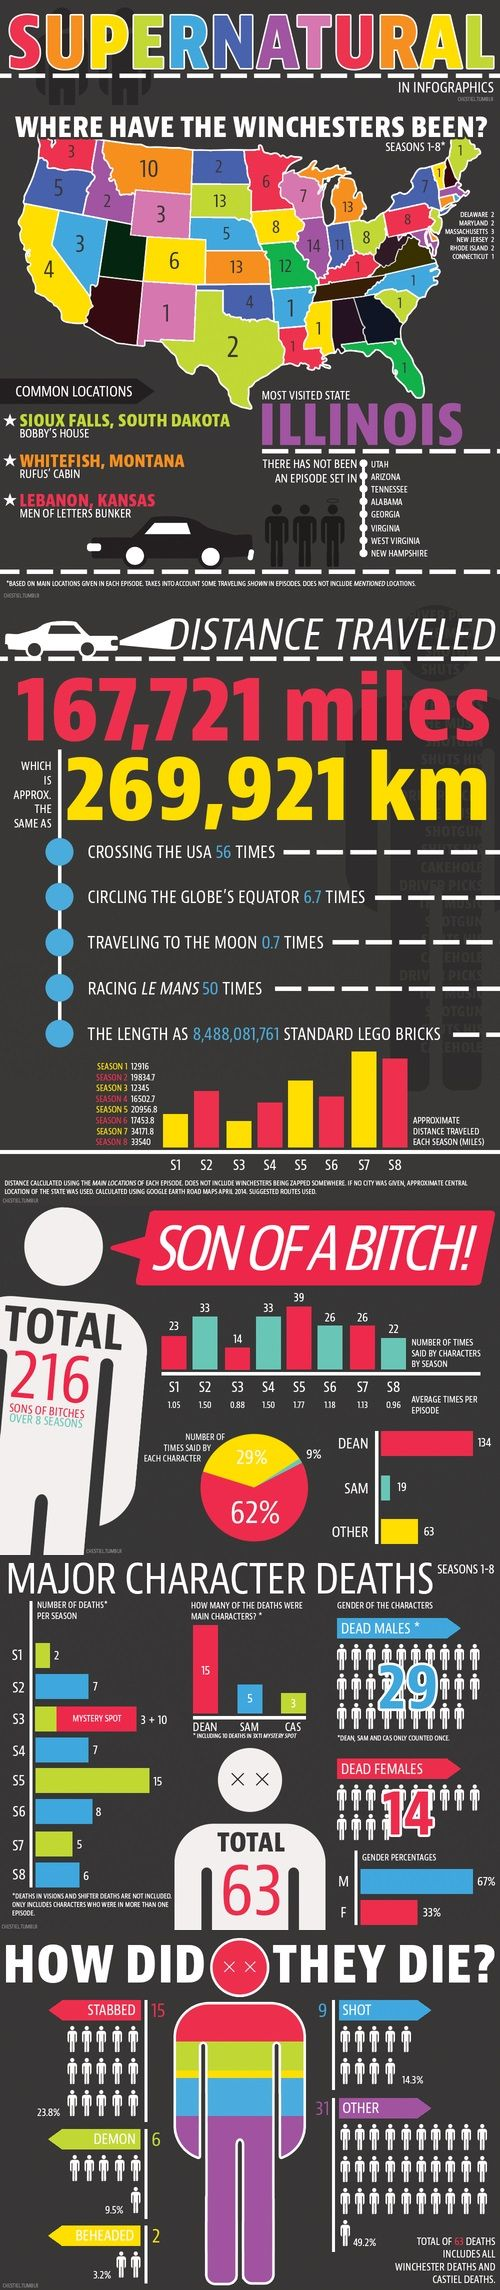 #Supernatural in Infographics. I love that someone actually took the time and got all this information. our fandom is insanely dedicated.